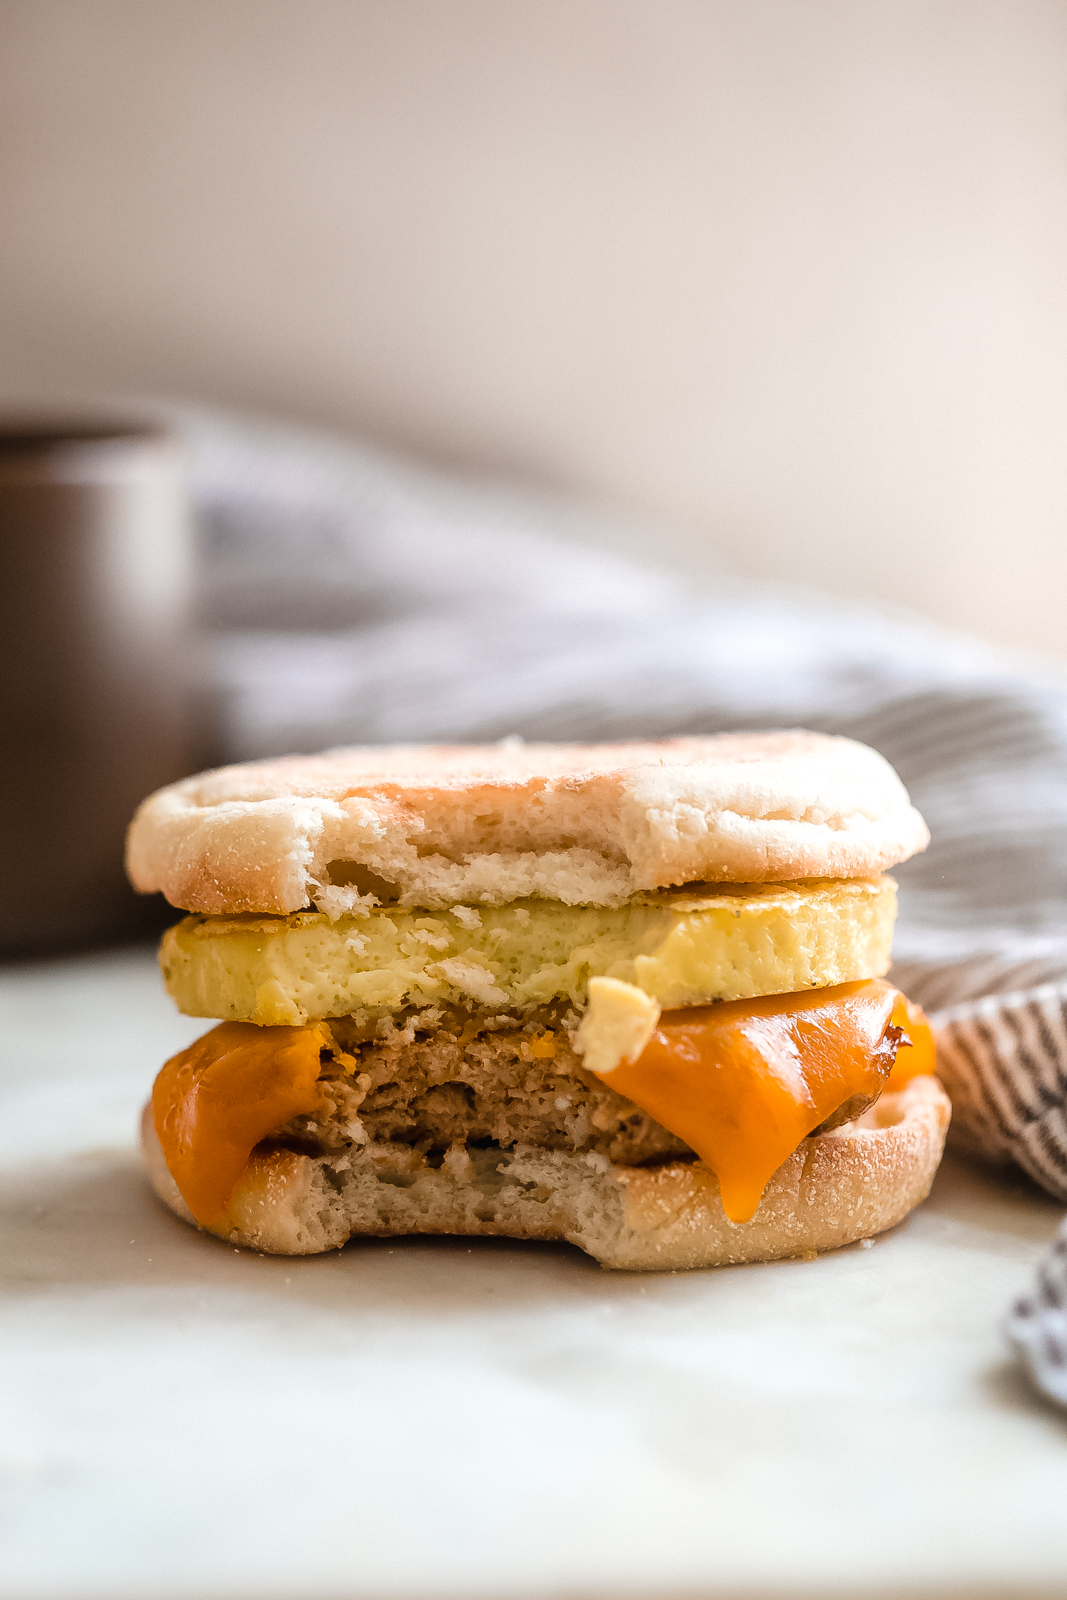 chicken sausage breakfast sandwich with a bite missing on white marble